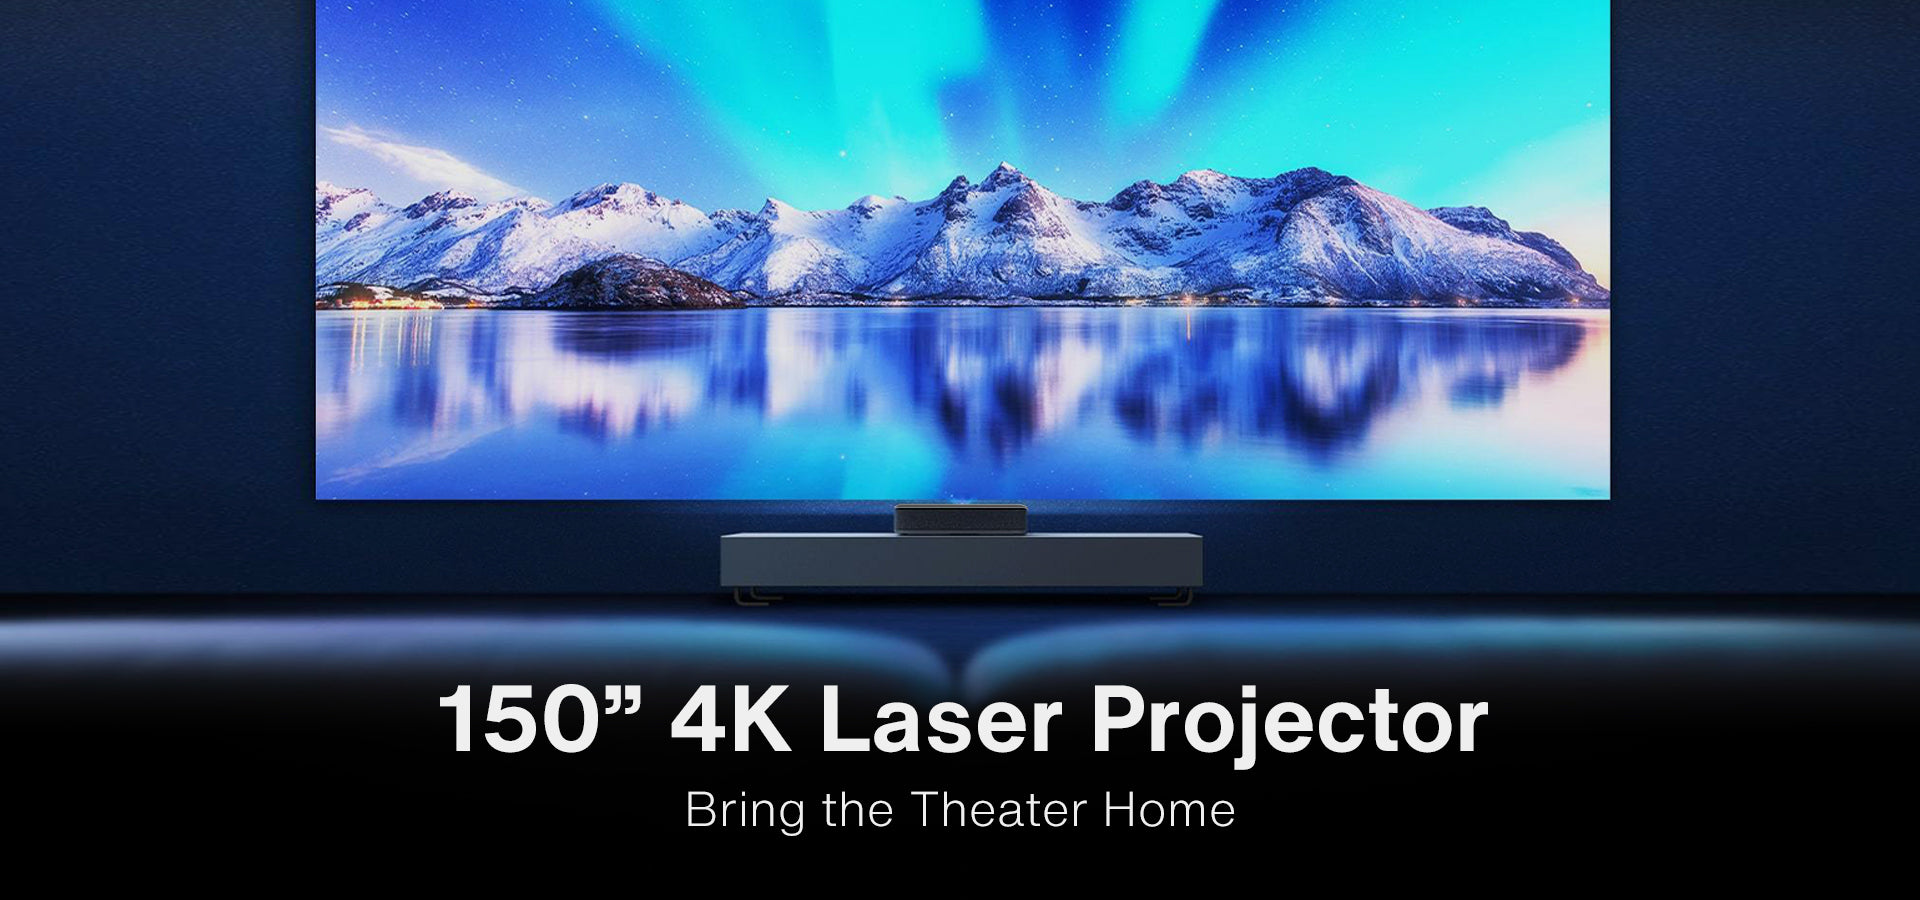 150'' 4K Laser Projector bring the theater home